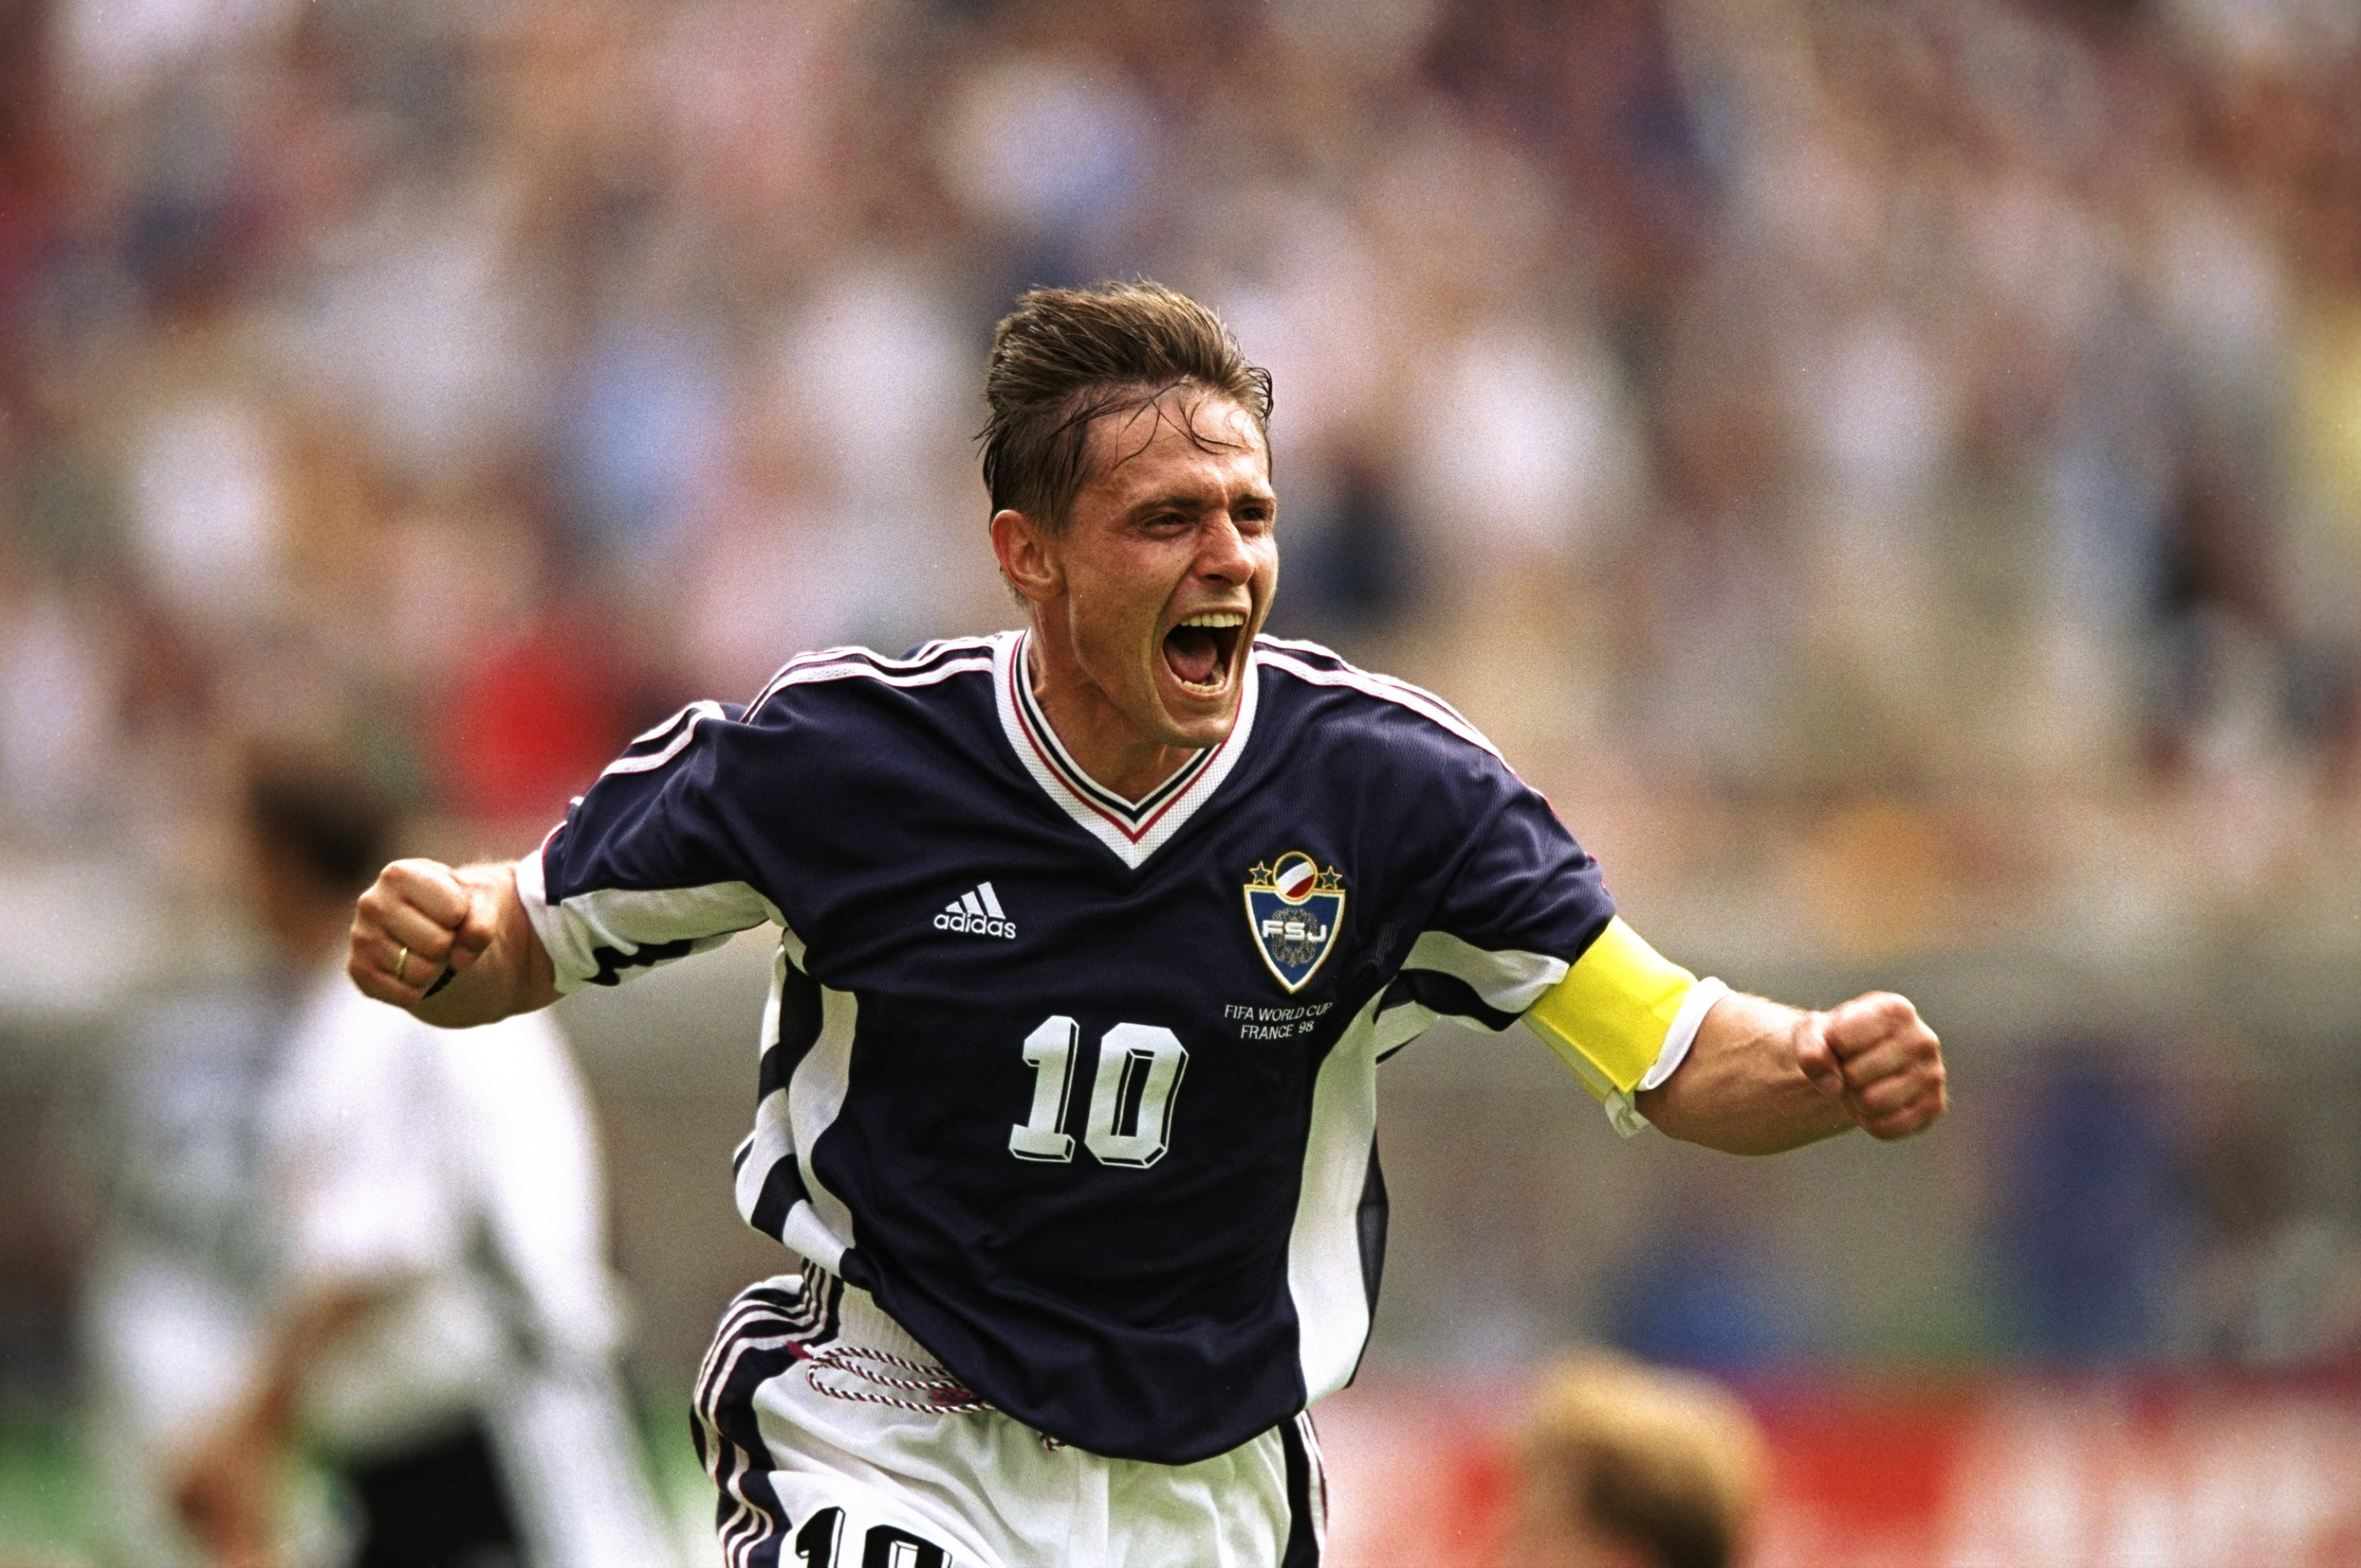 21 Jun 1998:  Yugoslavia captain Dragan Stojkovic celebrates his goal during the World Cup group F game against Germany at the Stade Felix Bollaert in Lens, France. The match ended 2-2. \ Mandatory Credit: Shaun Botterill /Allsport